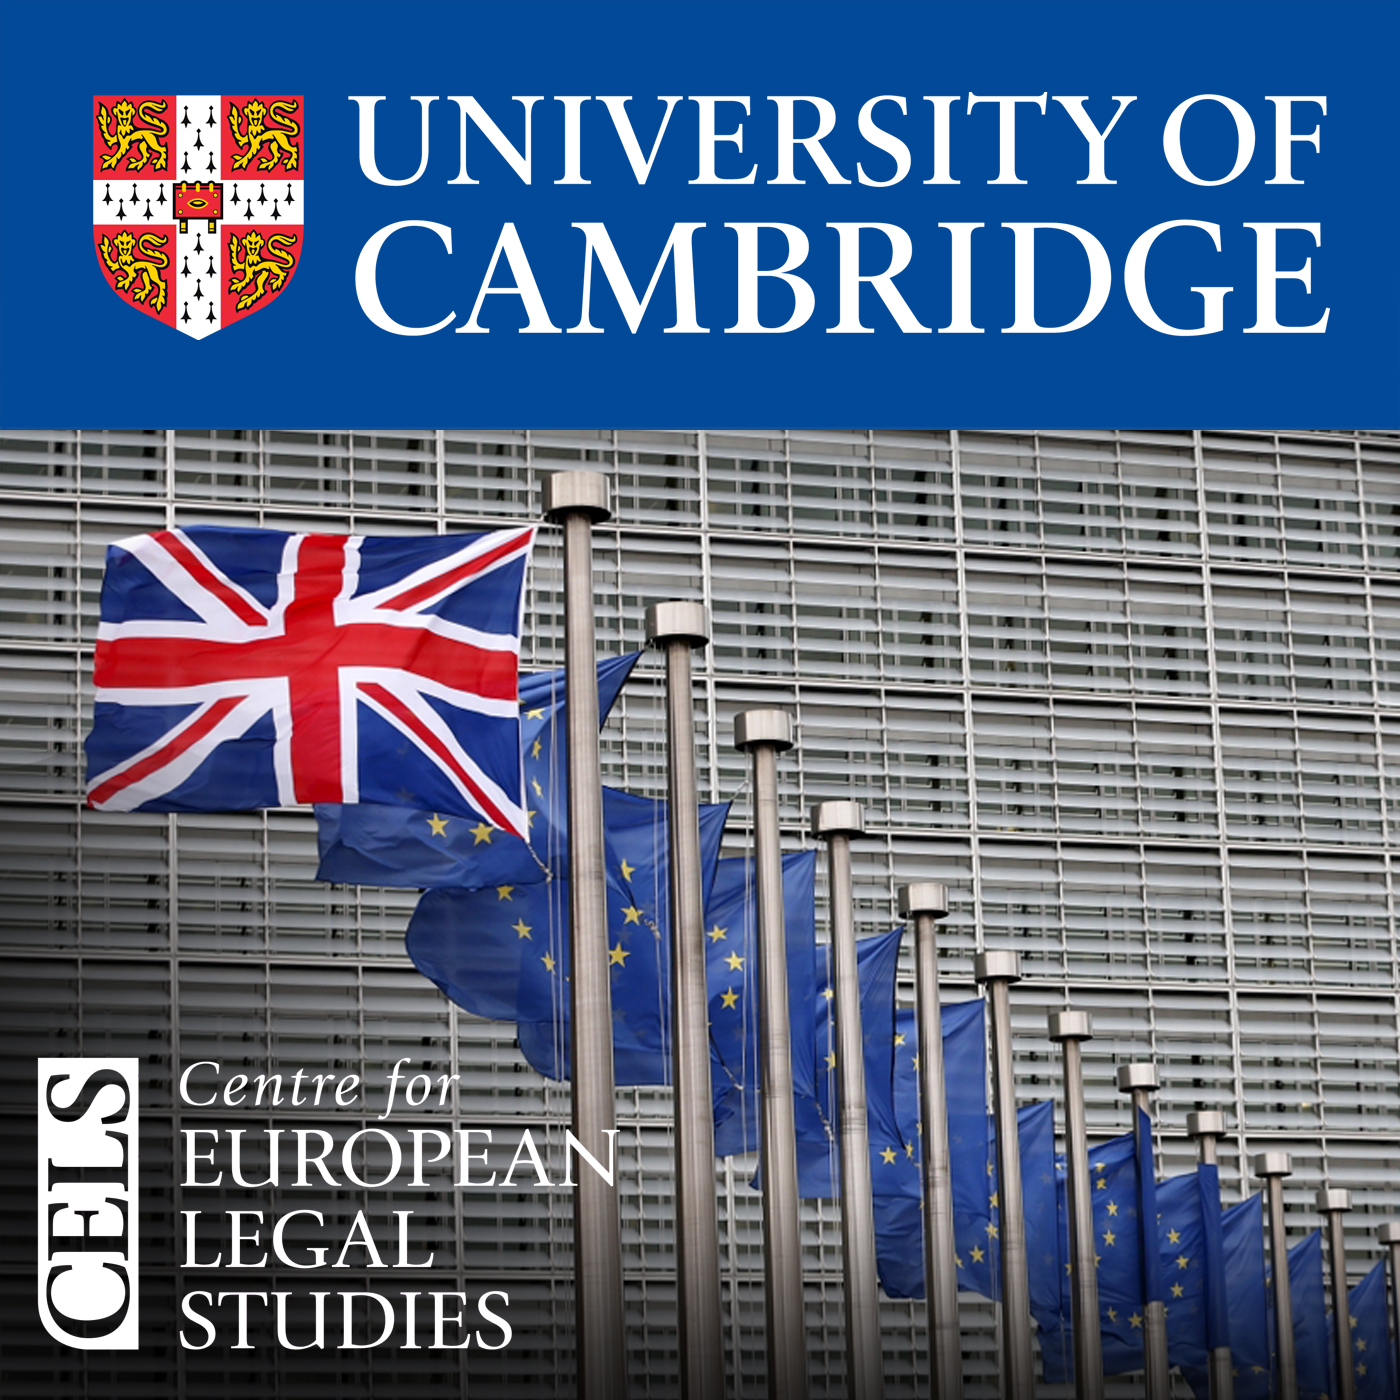 The Mackenzie-Stuart Lecture: The Centre for European Legal Studies's image